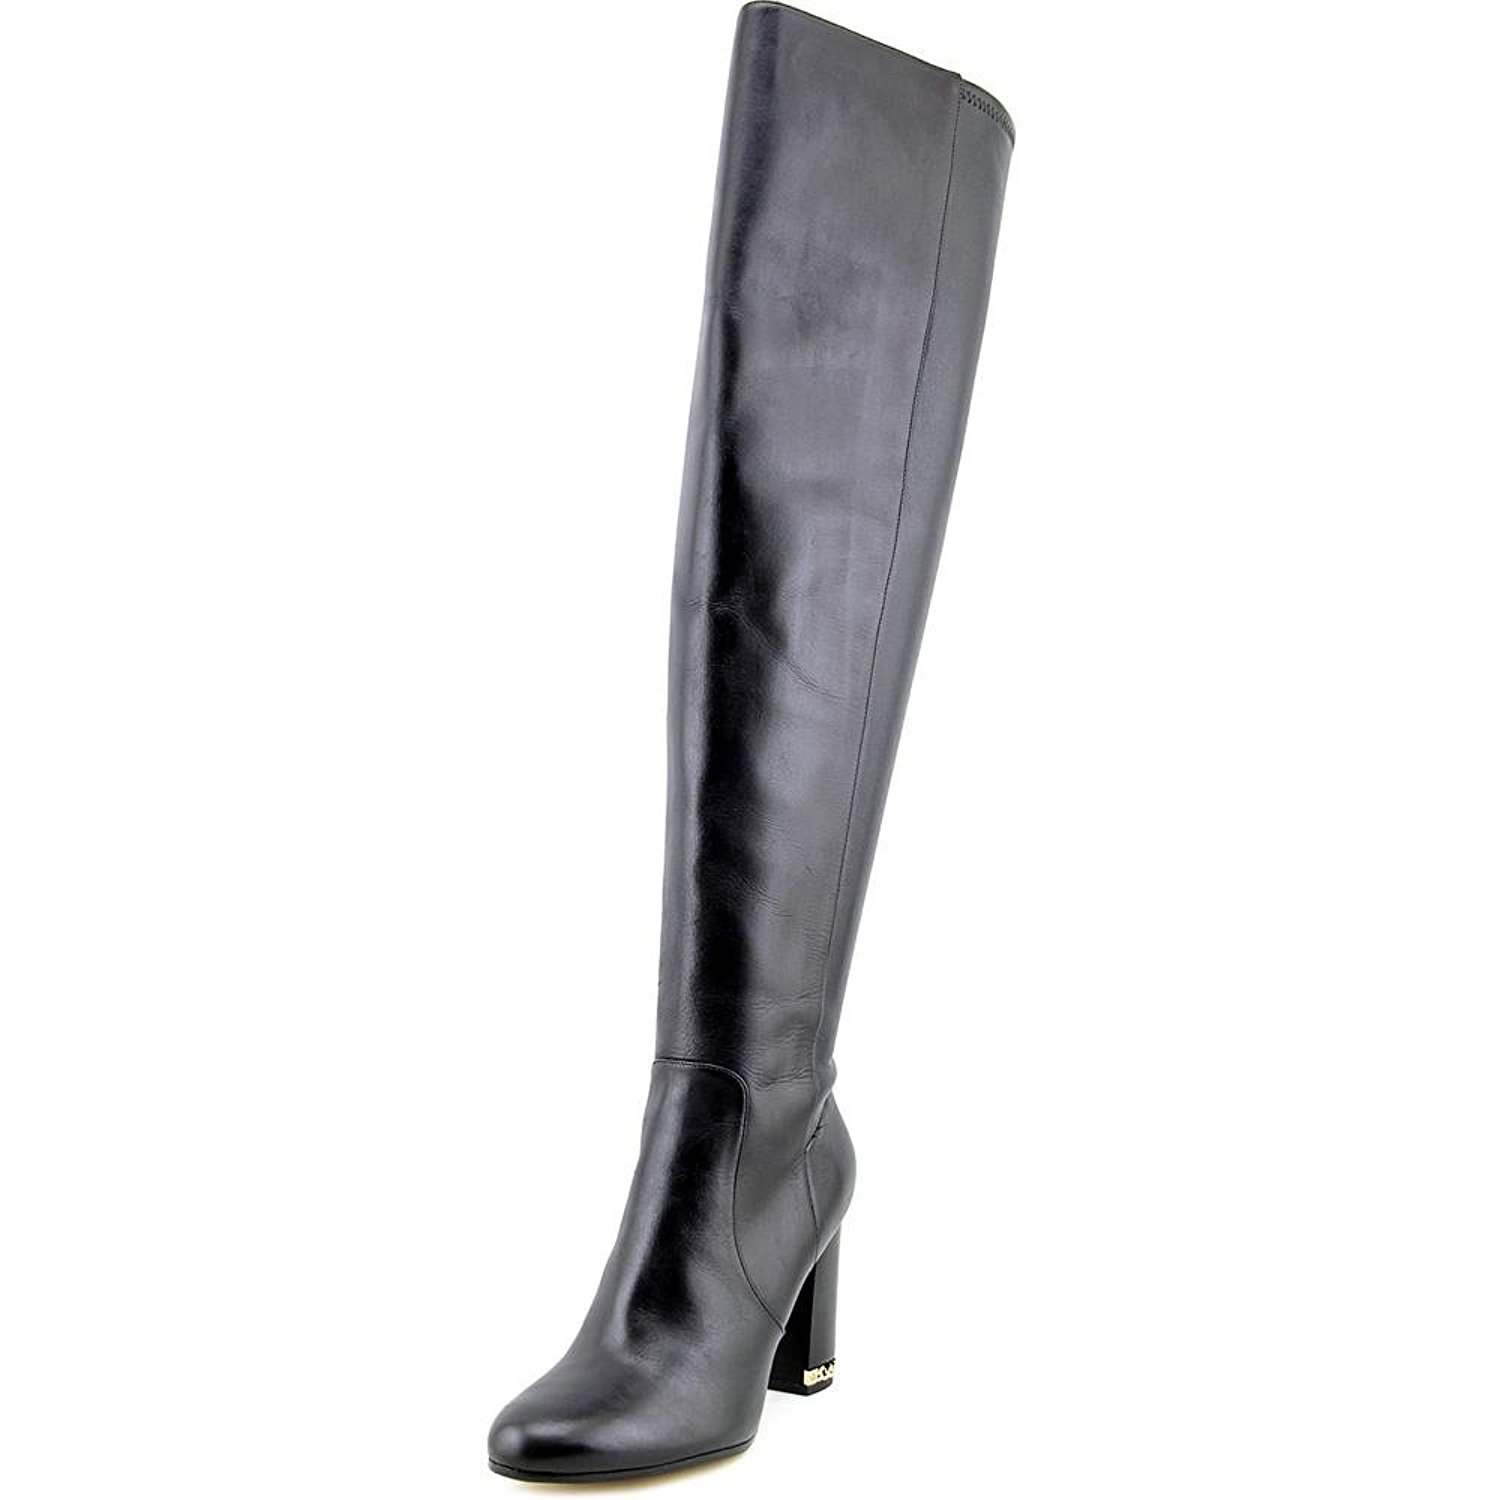 Michael Kors Womens Sabrina Leather Closed Toe Over Knee Fashion Boot...